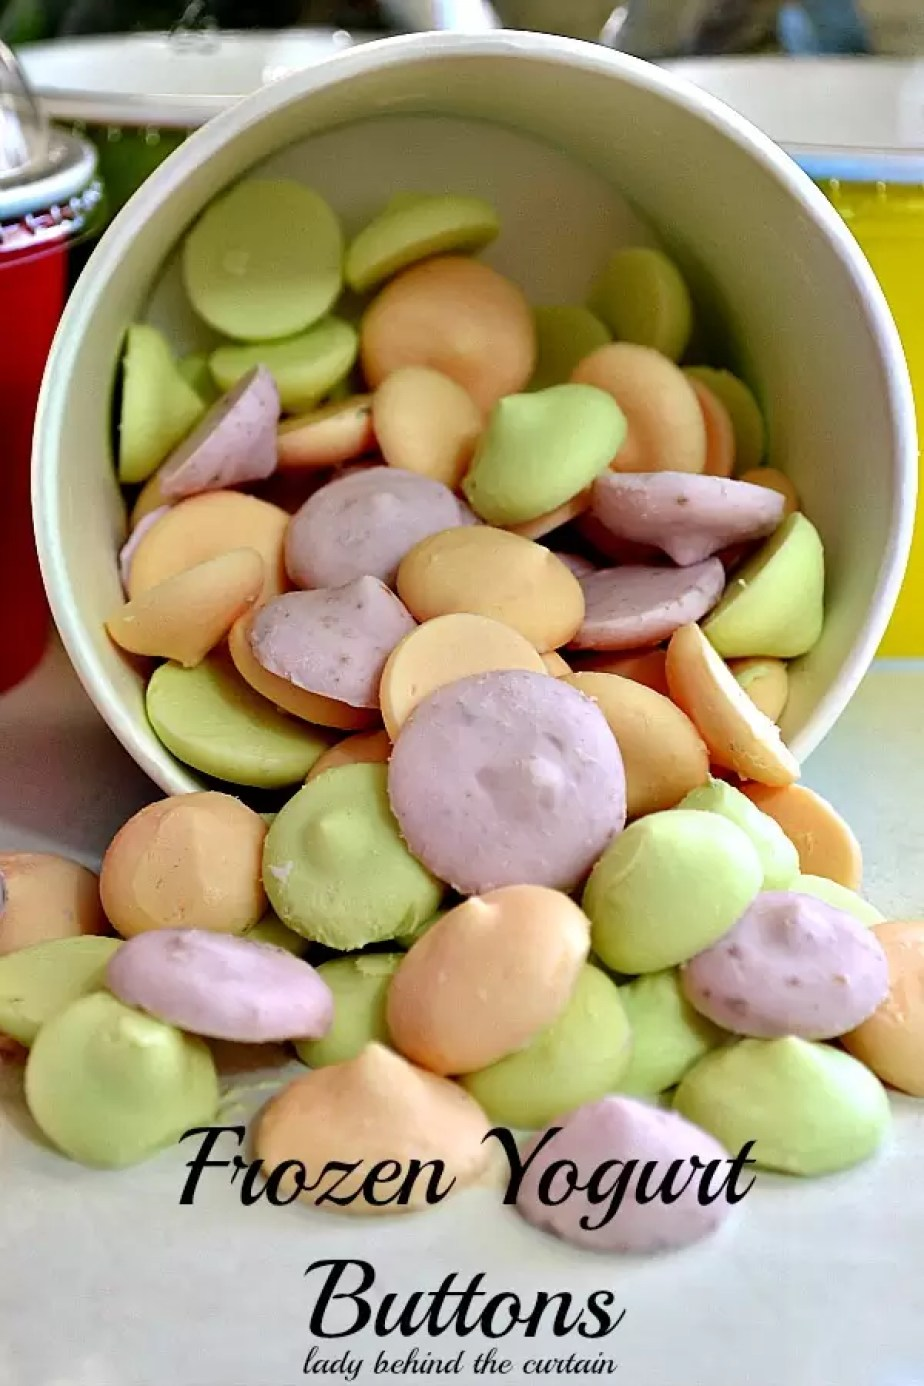 Frozen Yogurt Buttons by Lady Behind the Curtain